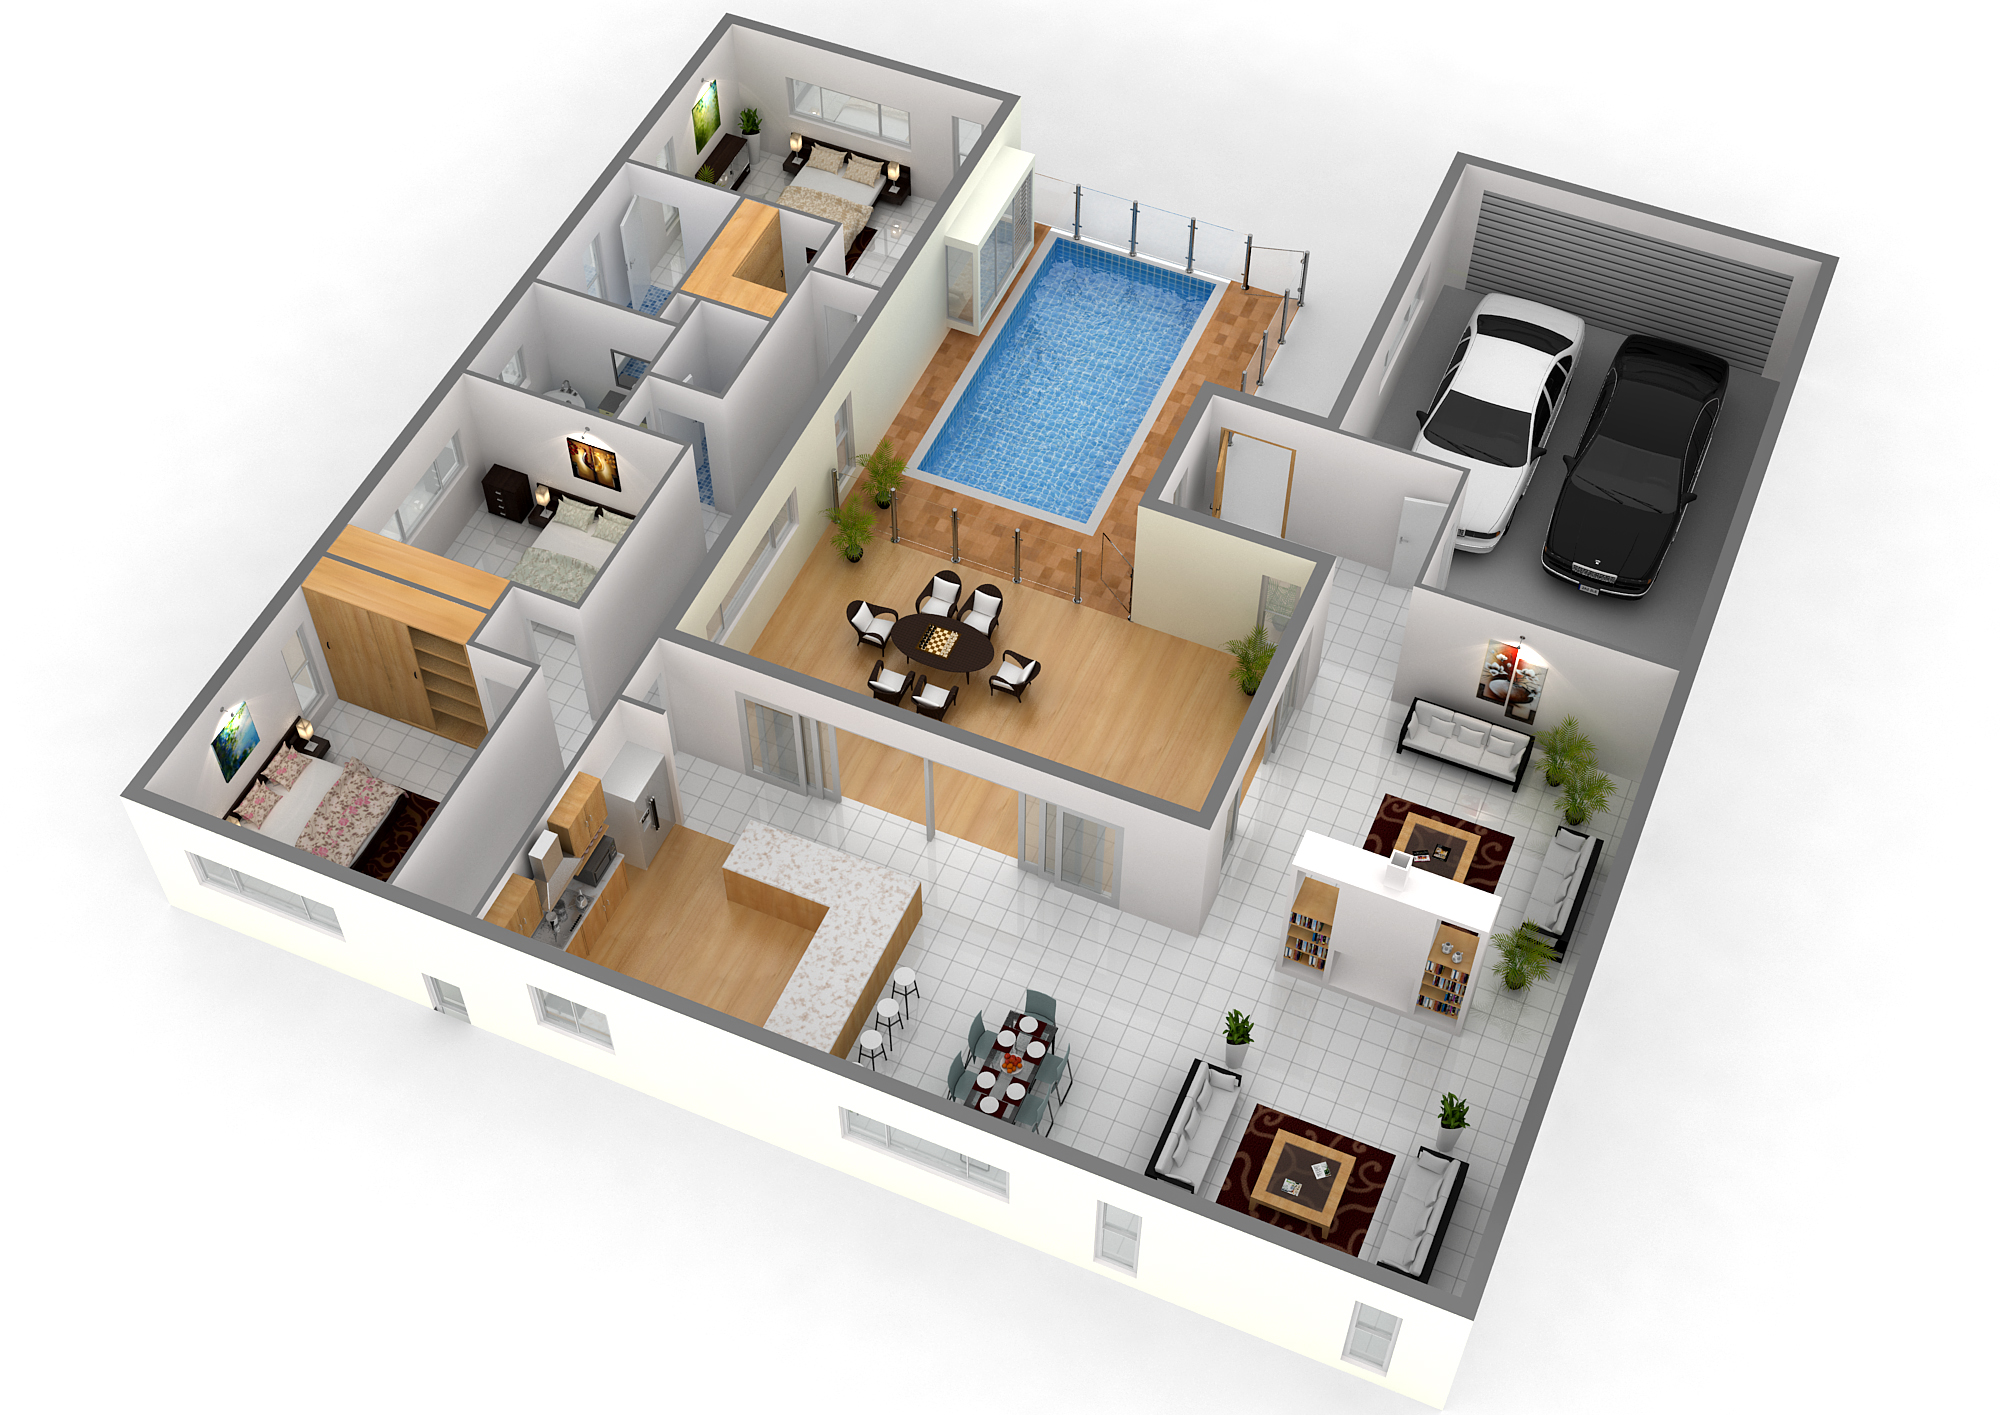 Manito Srinidhi Avenue Floor Plan